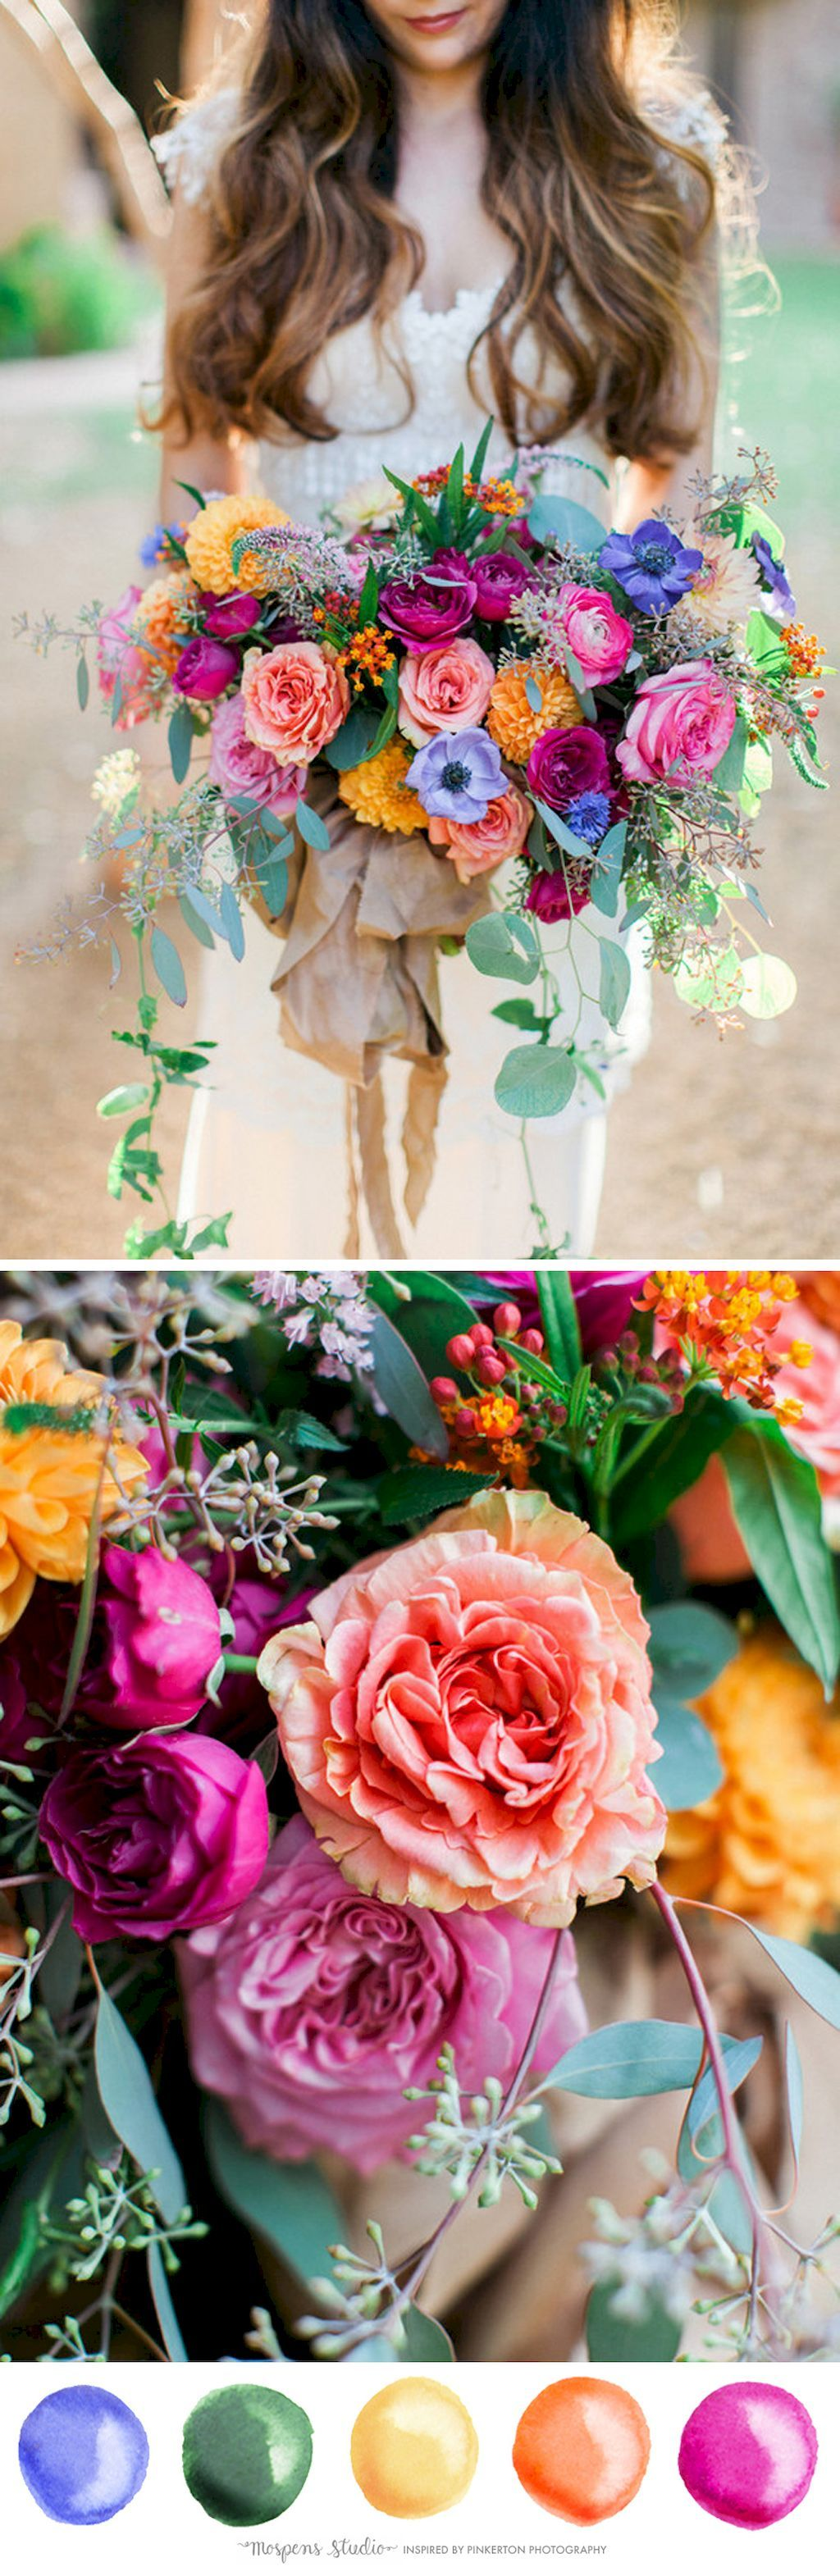 Wedding theme ideas by color   Rustic and Romantic Floral Wedding Themes Ideas  Floral wedding